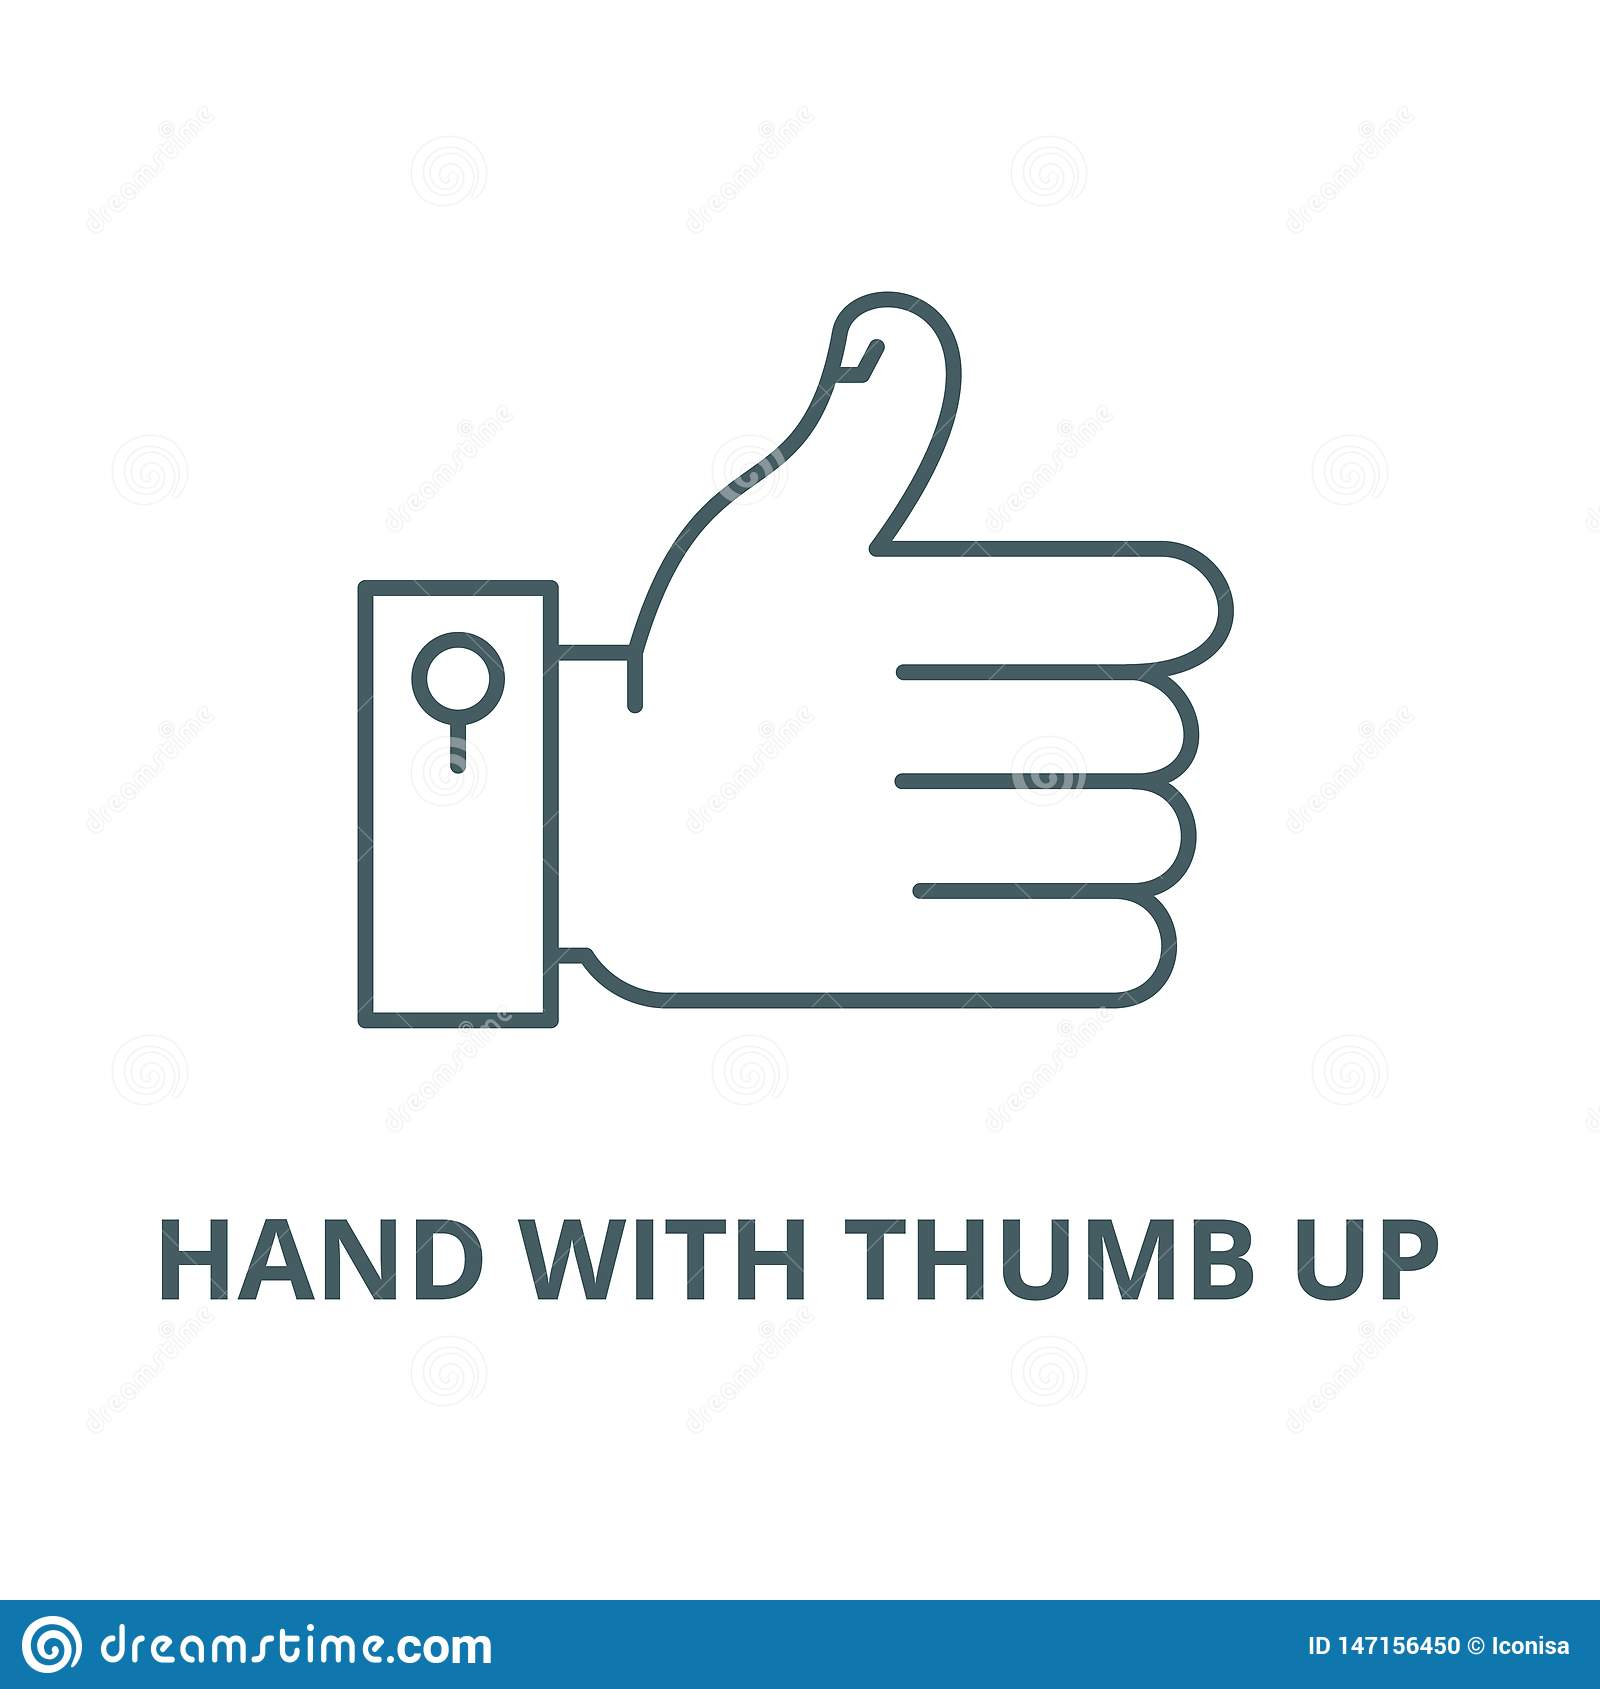 Hand with thumb up vector line icon, linear concept, outline sign, symbol